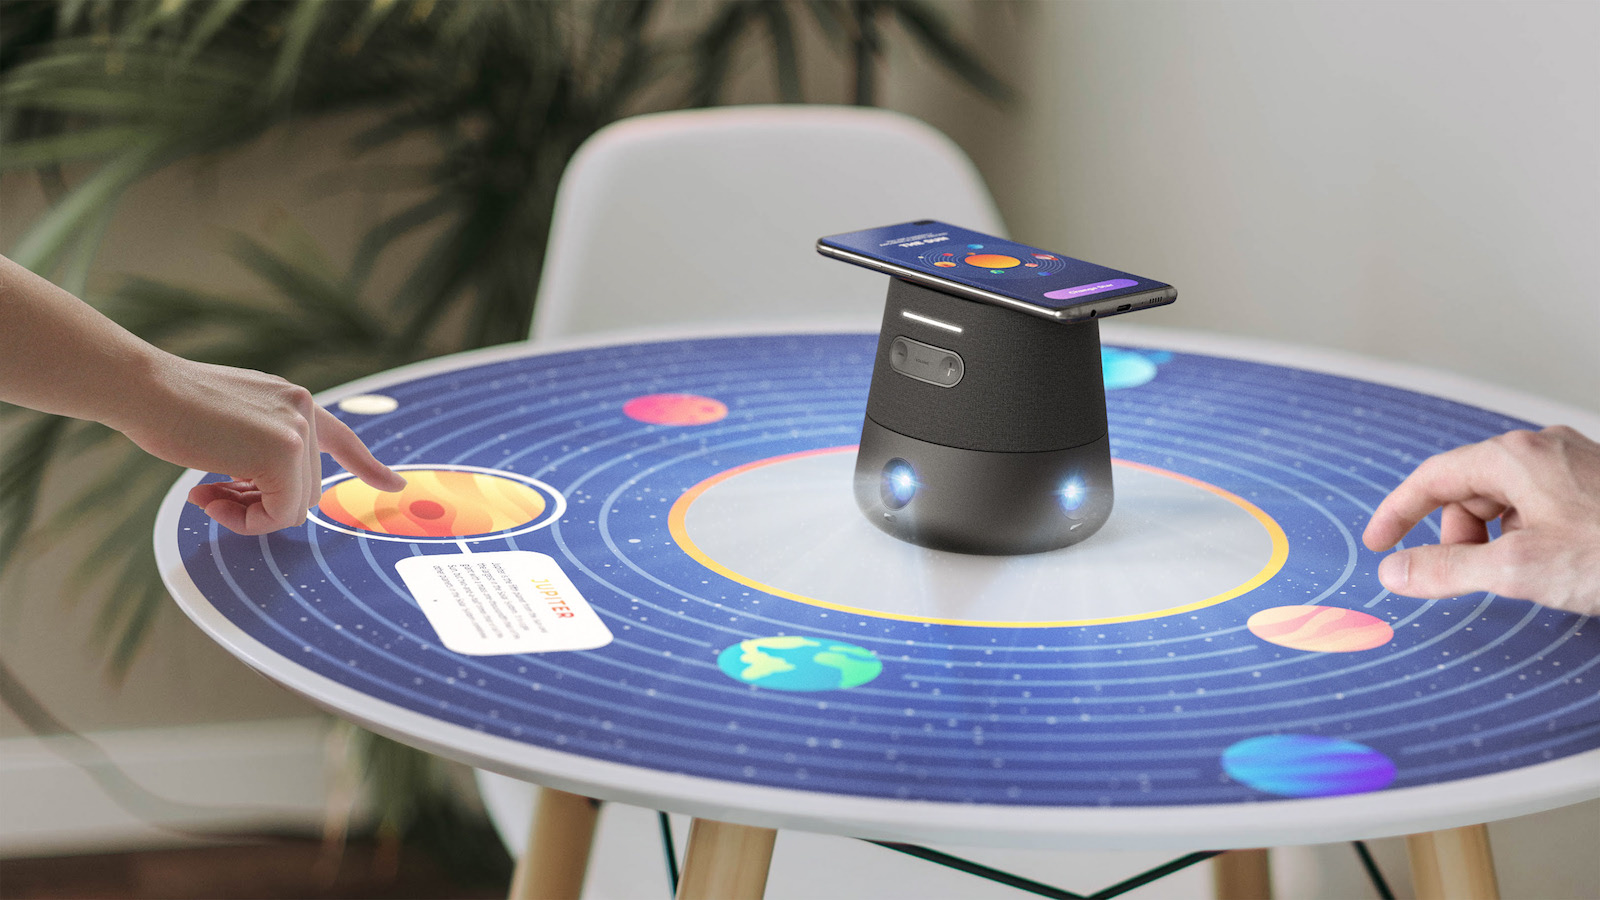 Alloy Orbit 360° Concept Projector creates an interactive touch interface for gaming